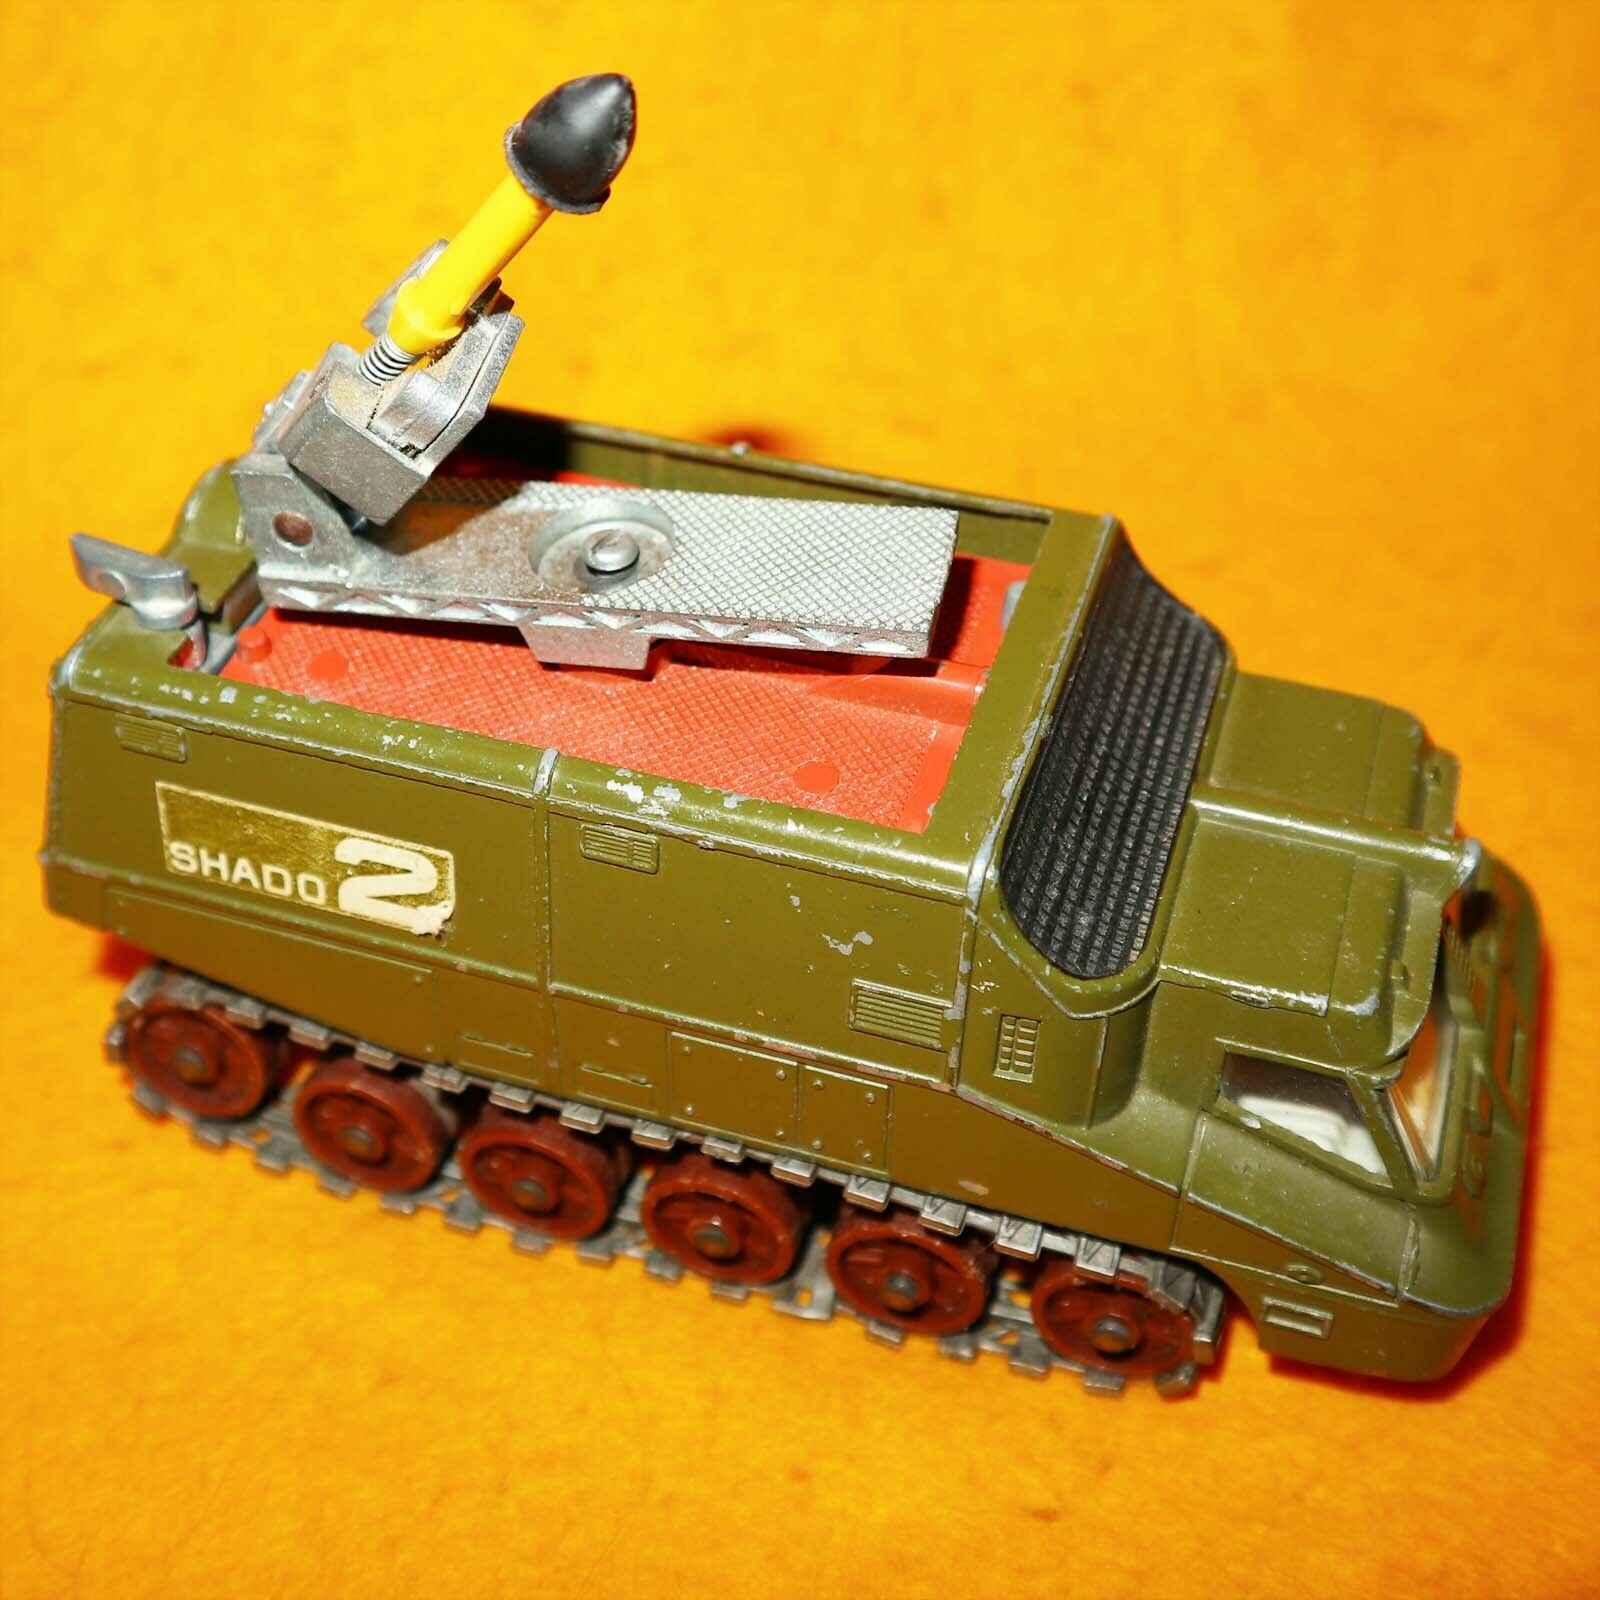 Jahr 70s DINKY SpielzeugS 353 UFO SHADO 2 MOBILE SPACE VEHICLE COMPLETE BOXED RARE